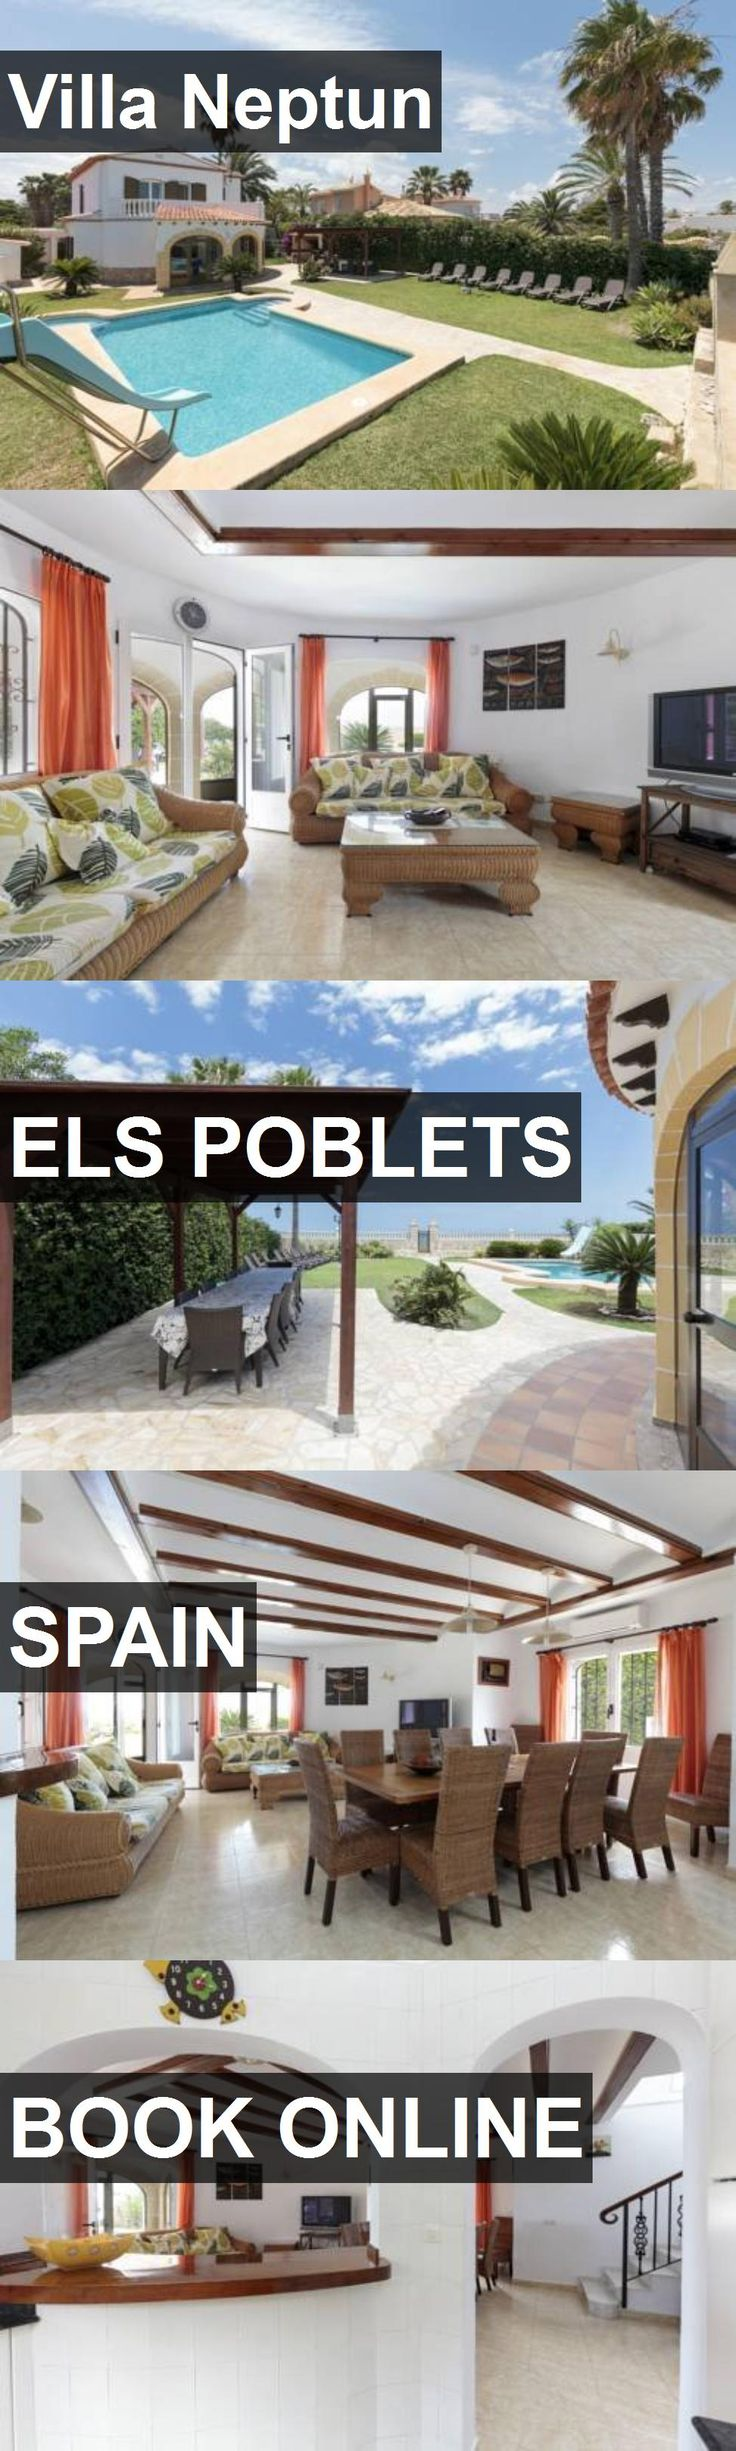 Hotel Villa Neptun in Els Poblets, Spain. For more information, photos, reviews and best prices please follow the link. #Spain #ElsPoblets #VillaNeptun #hotel #travel #vacation